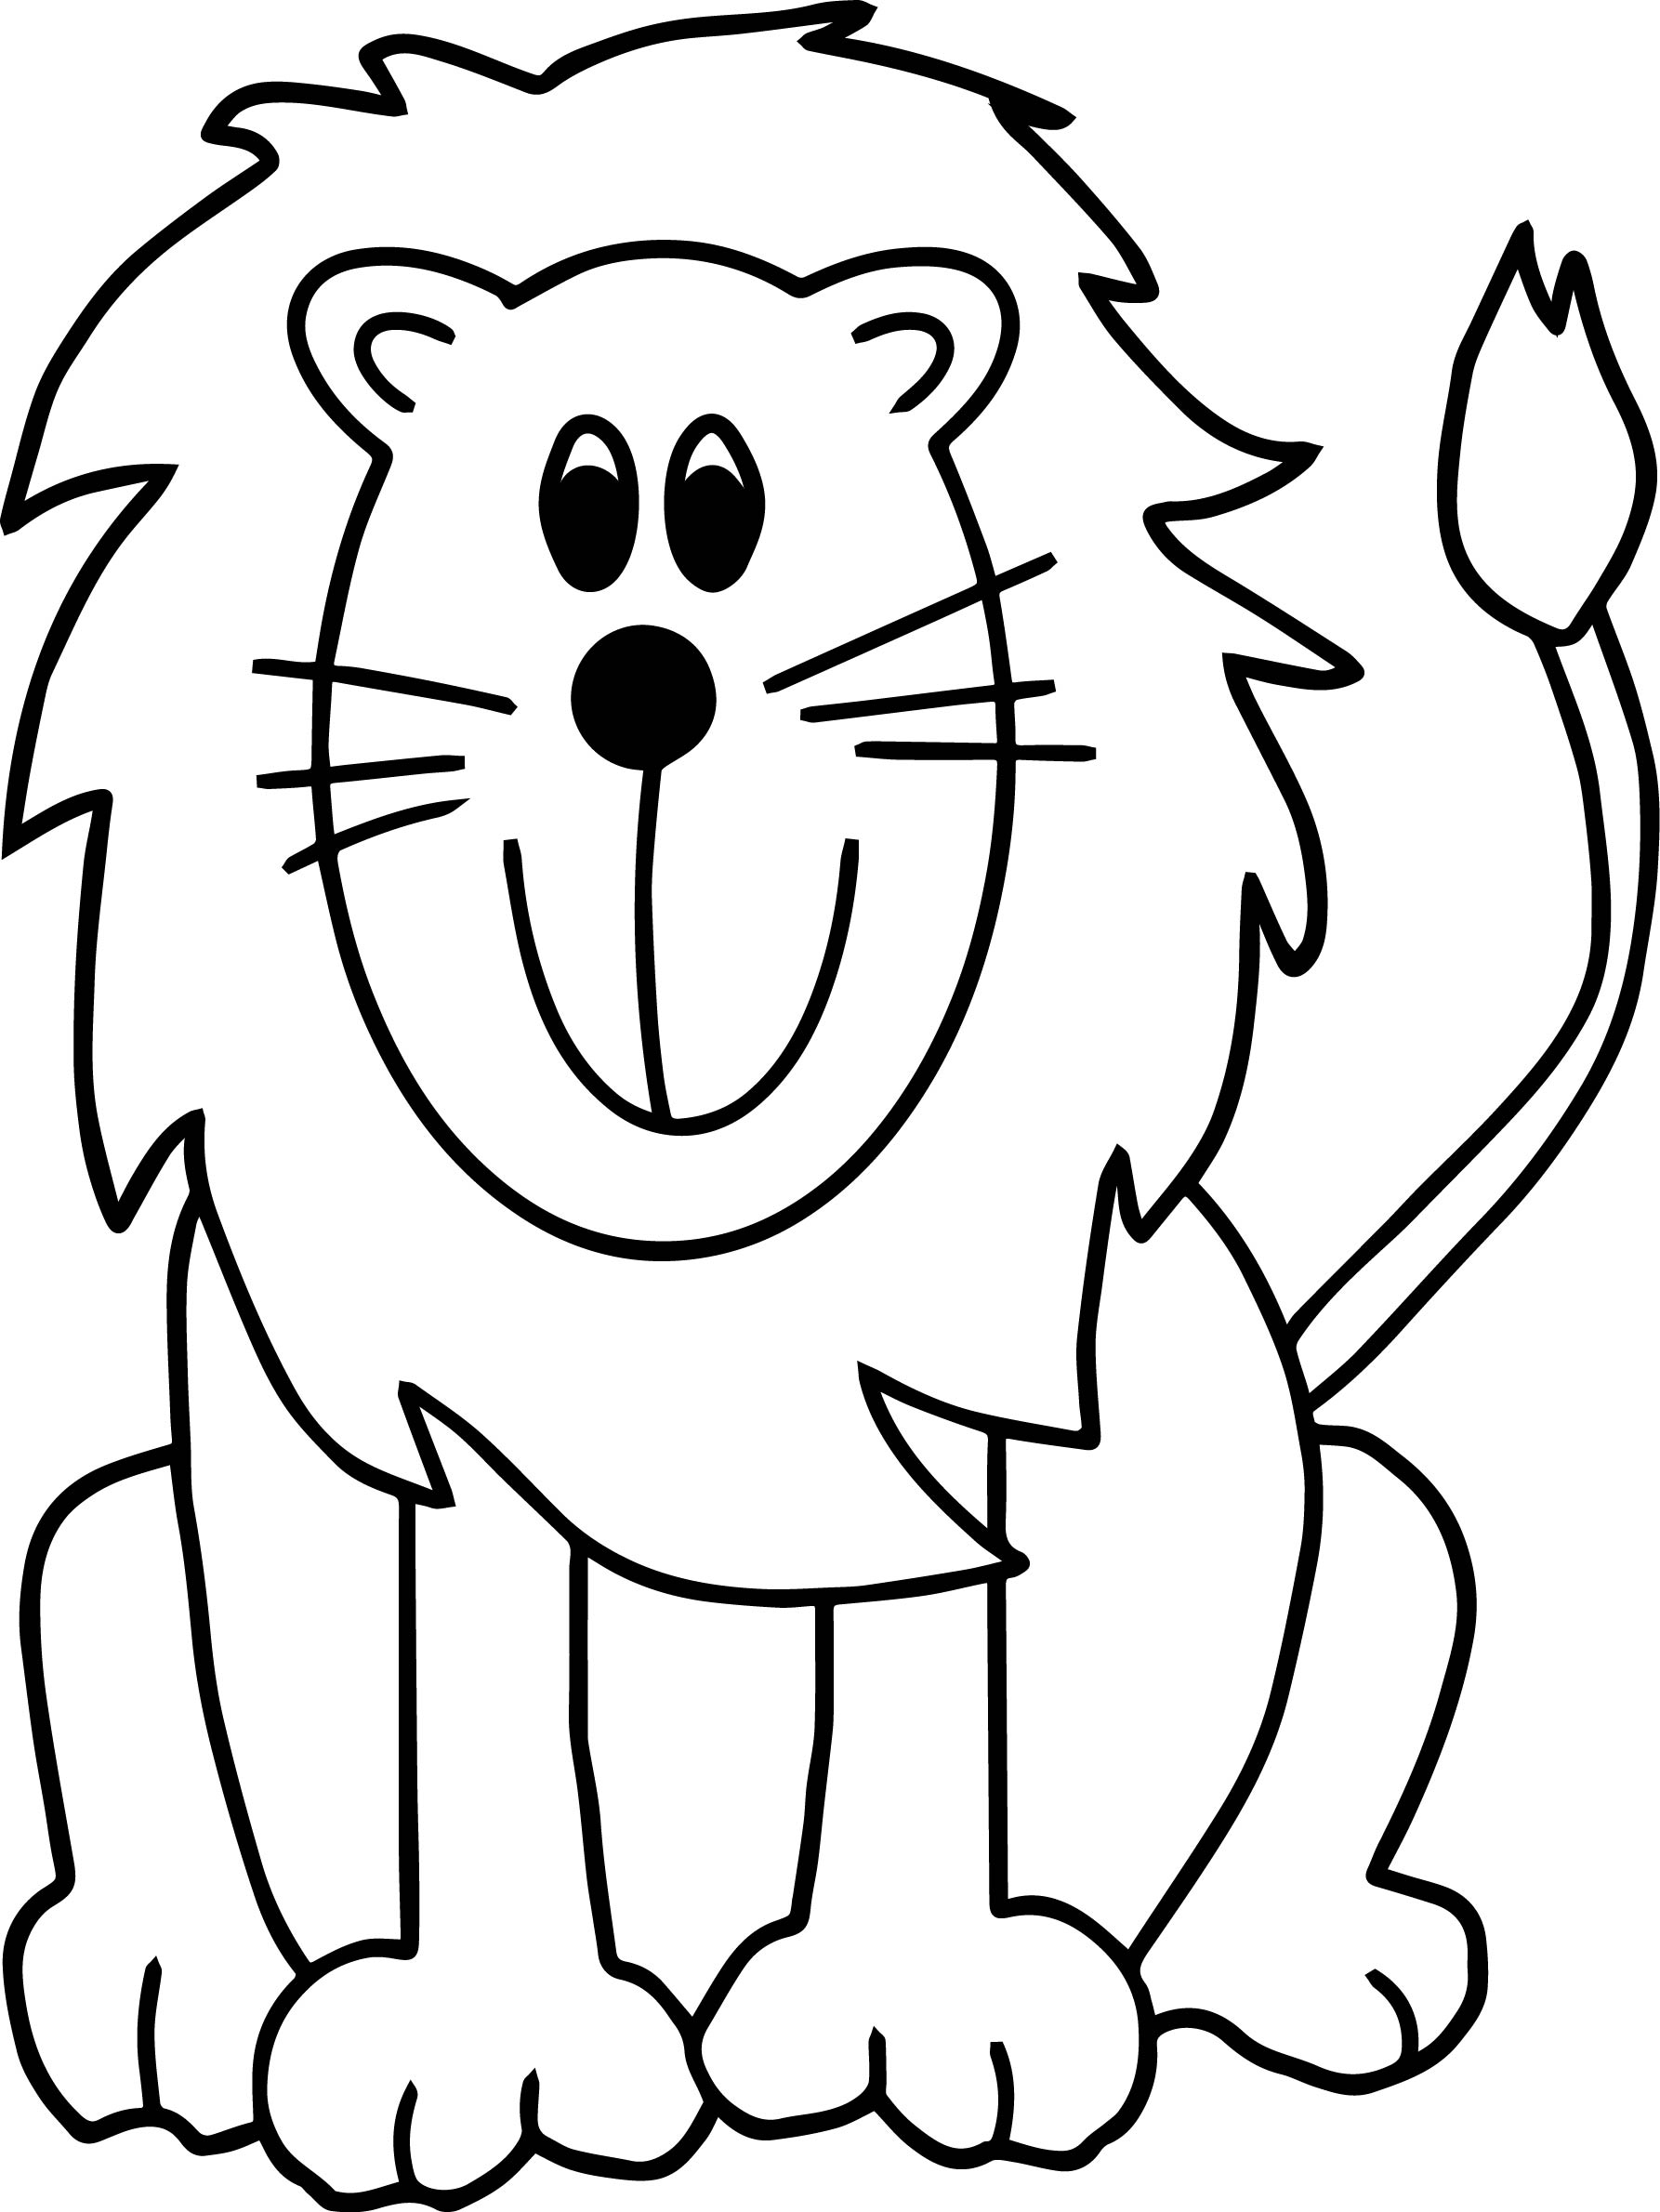 zoo coloring pages bltidm. Black Bedroom Furniture Sets. Home Design Ideas